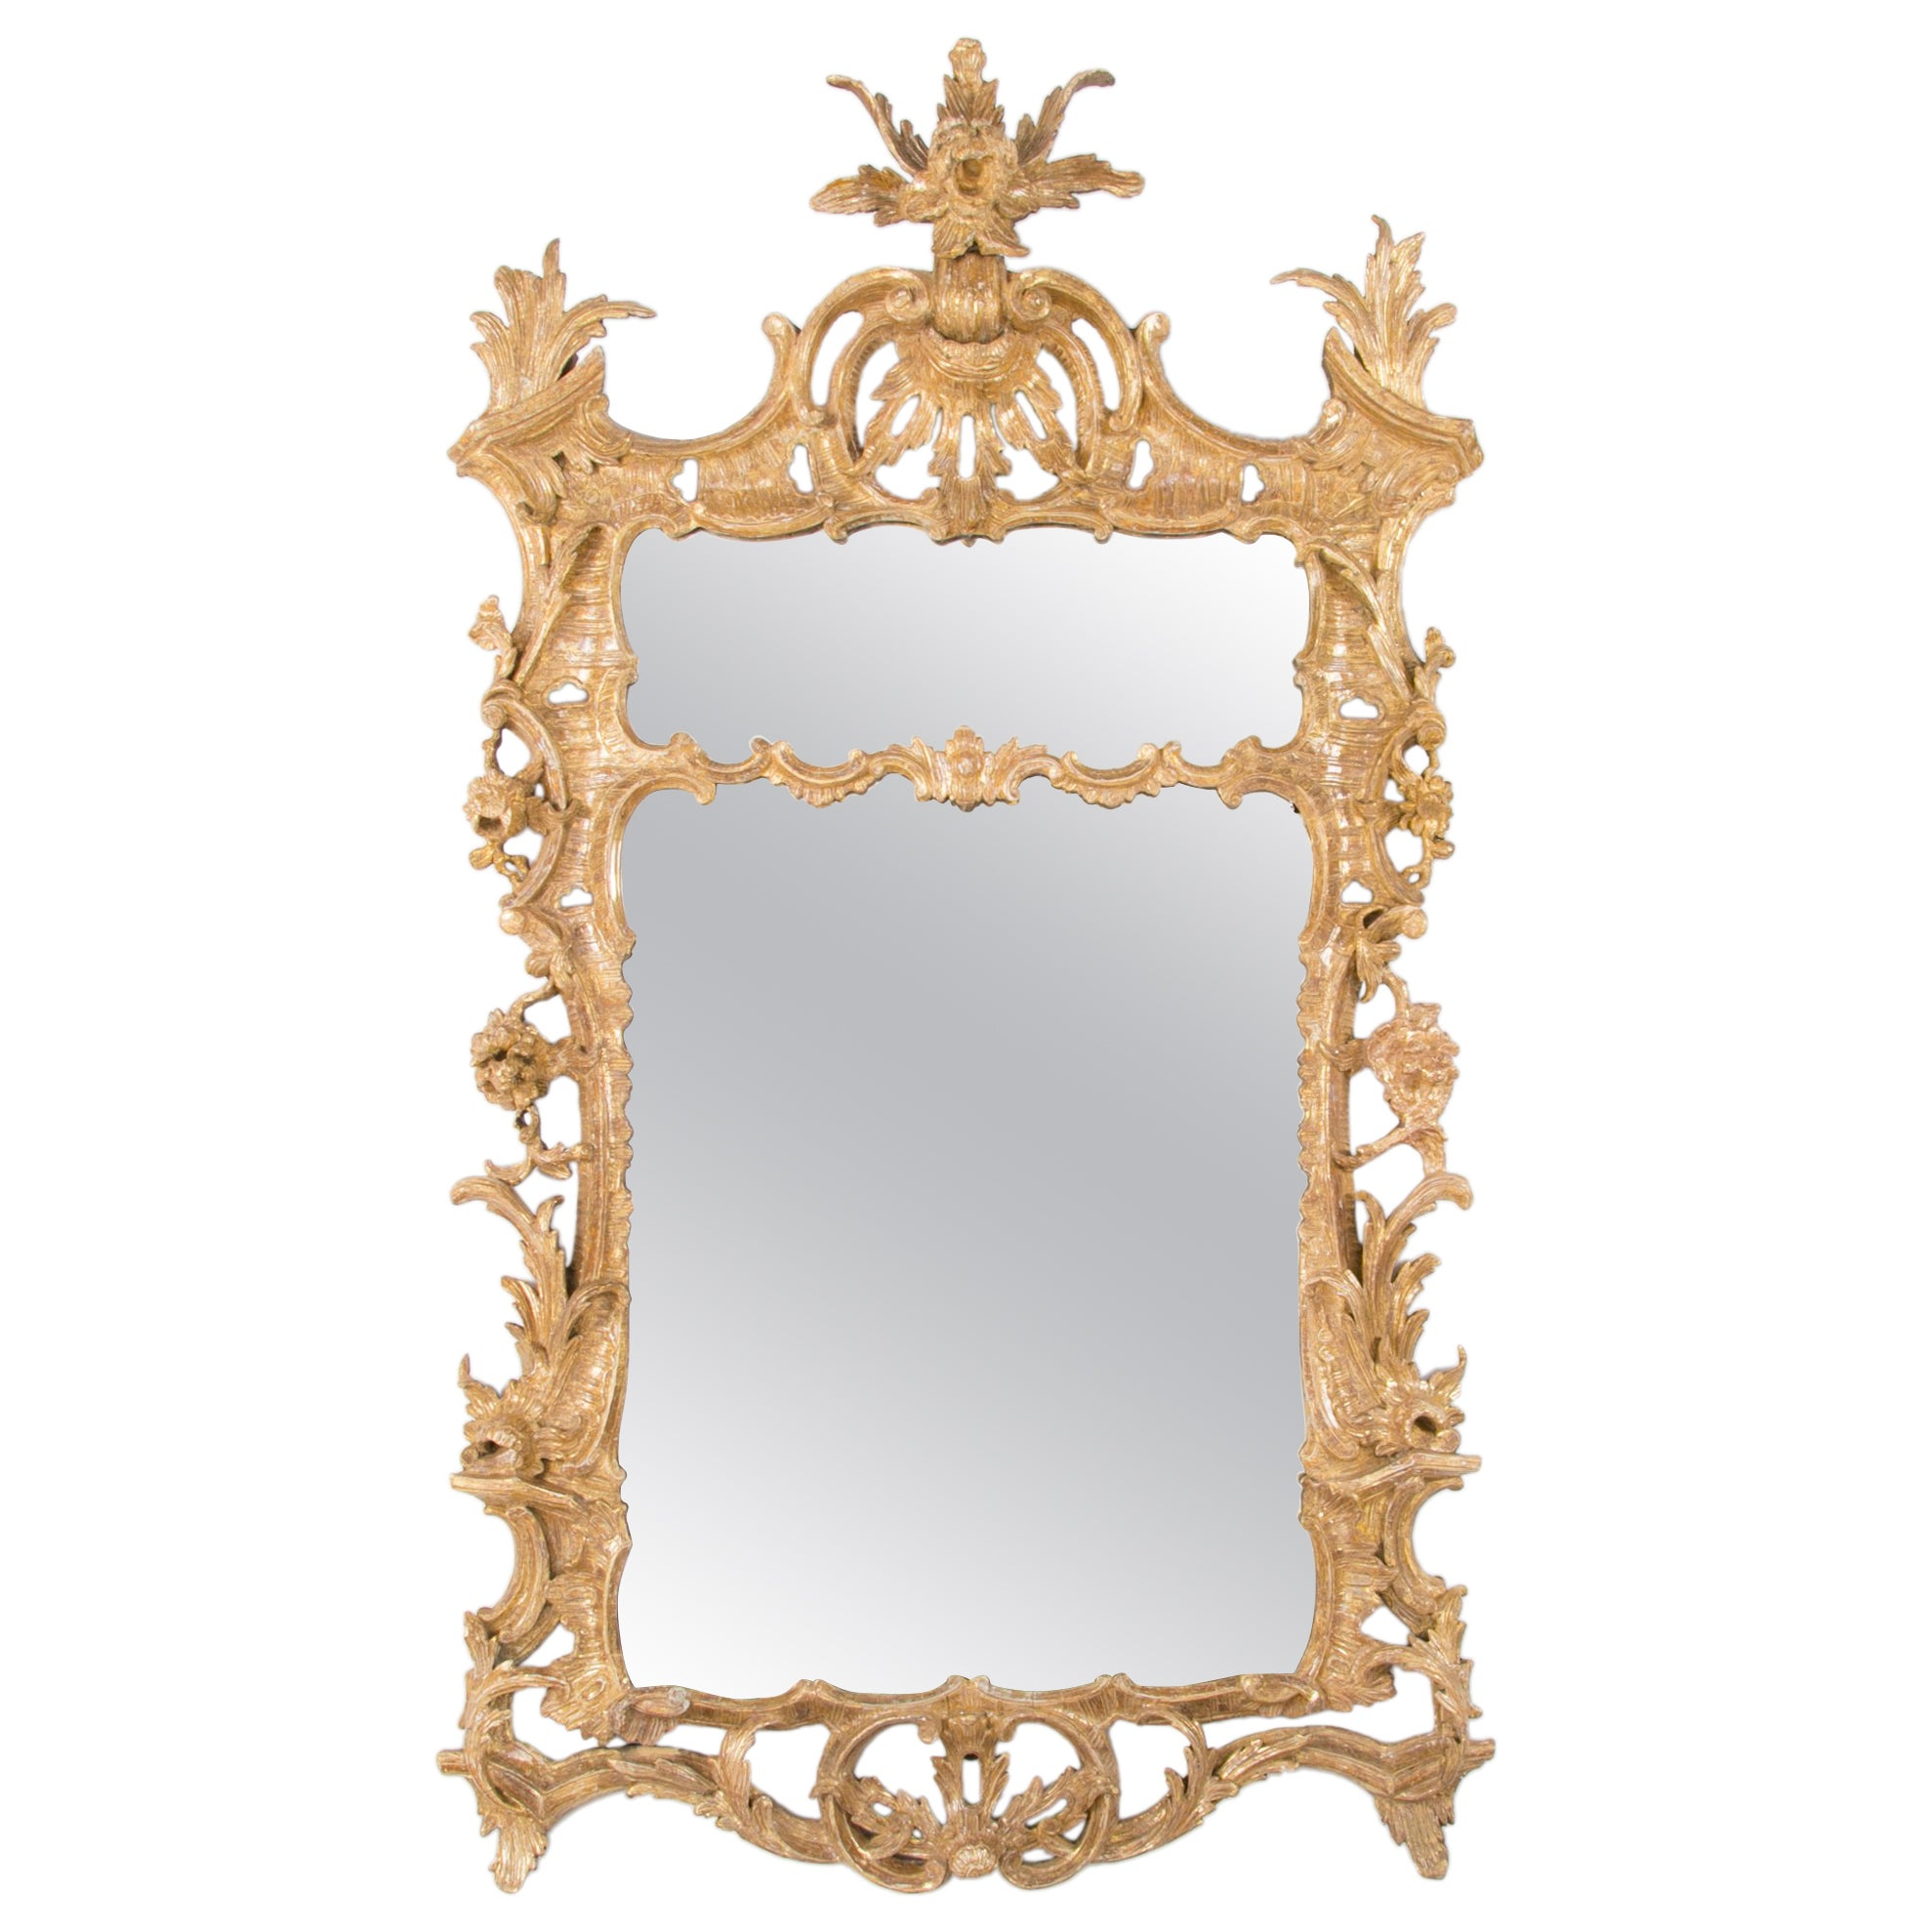 18th Century Carved and Giltwood English Chippendale Mirror, Large Scale